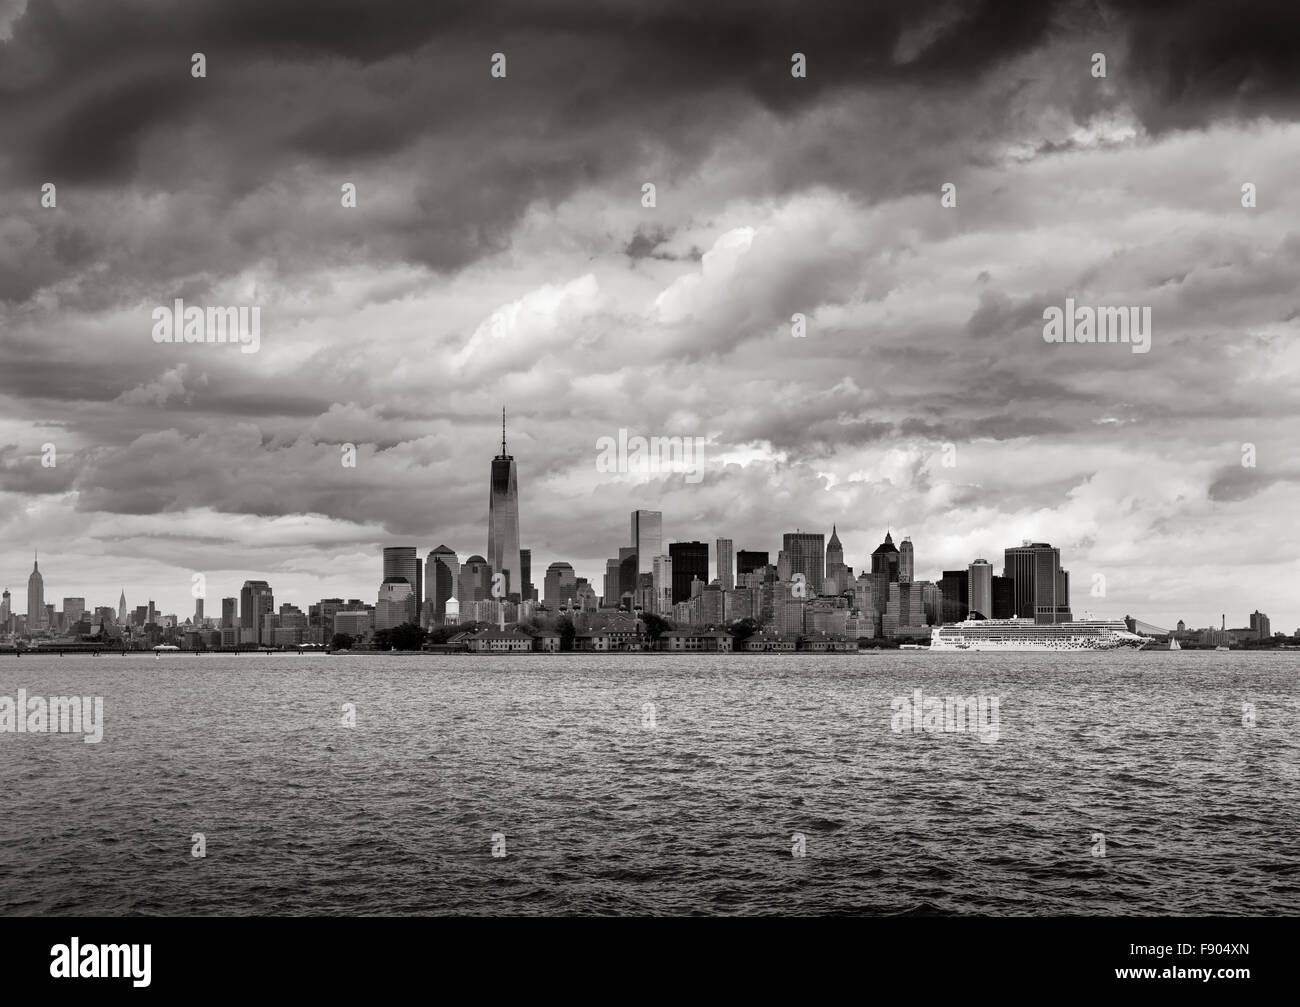 Le port de New York en noir & blanc vue de la baisse des grattes-ciel de Manhattan, New York. One World Trade Photo Stock